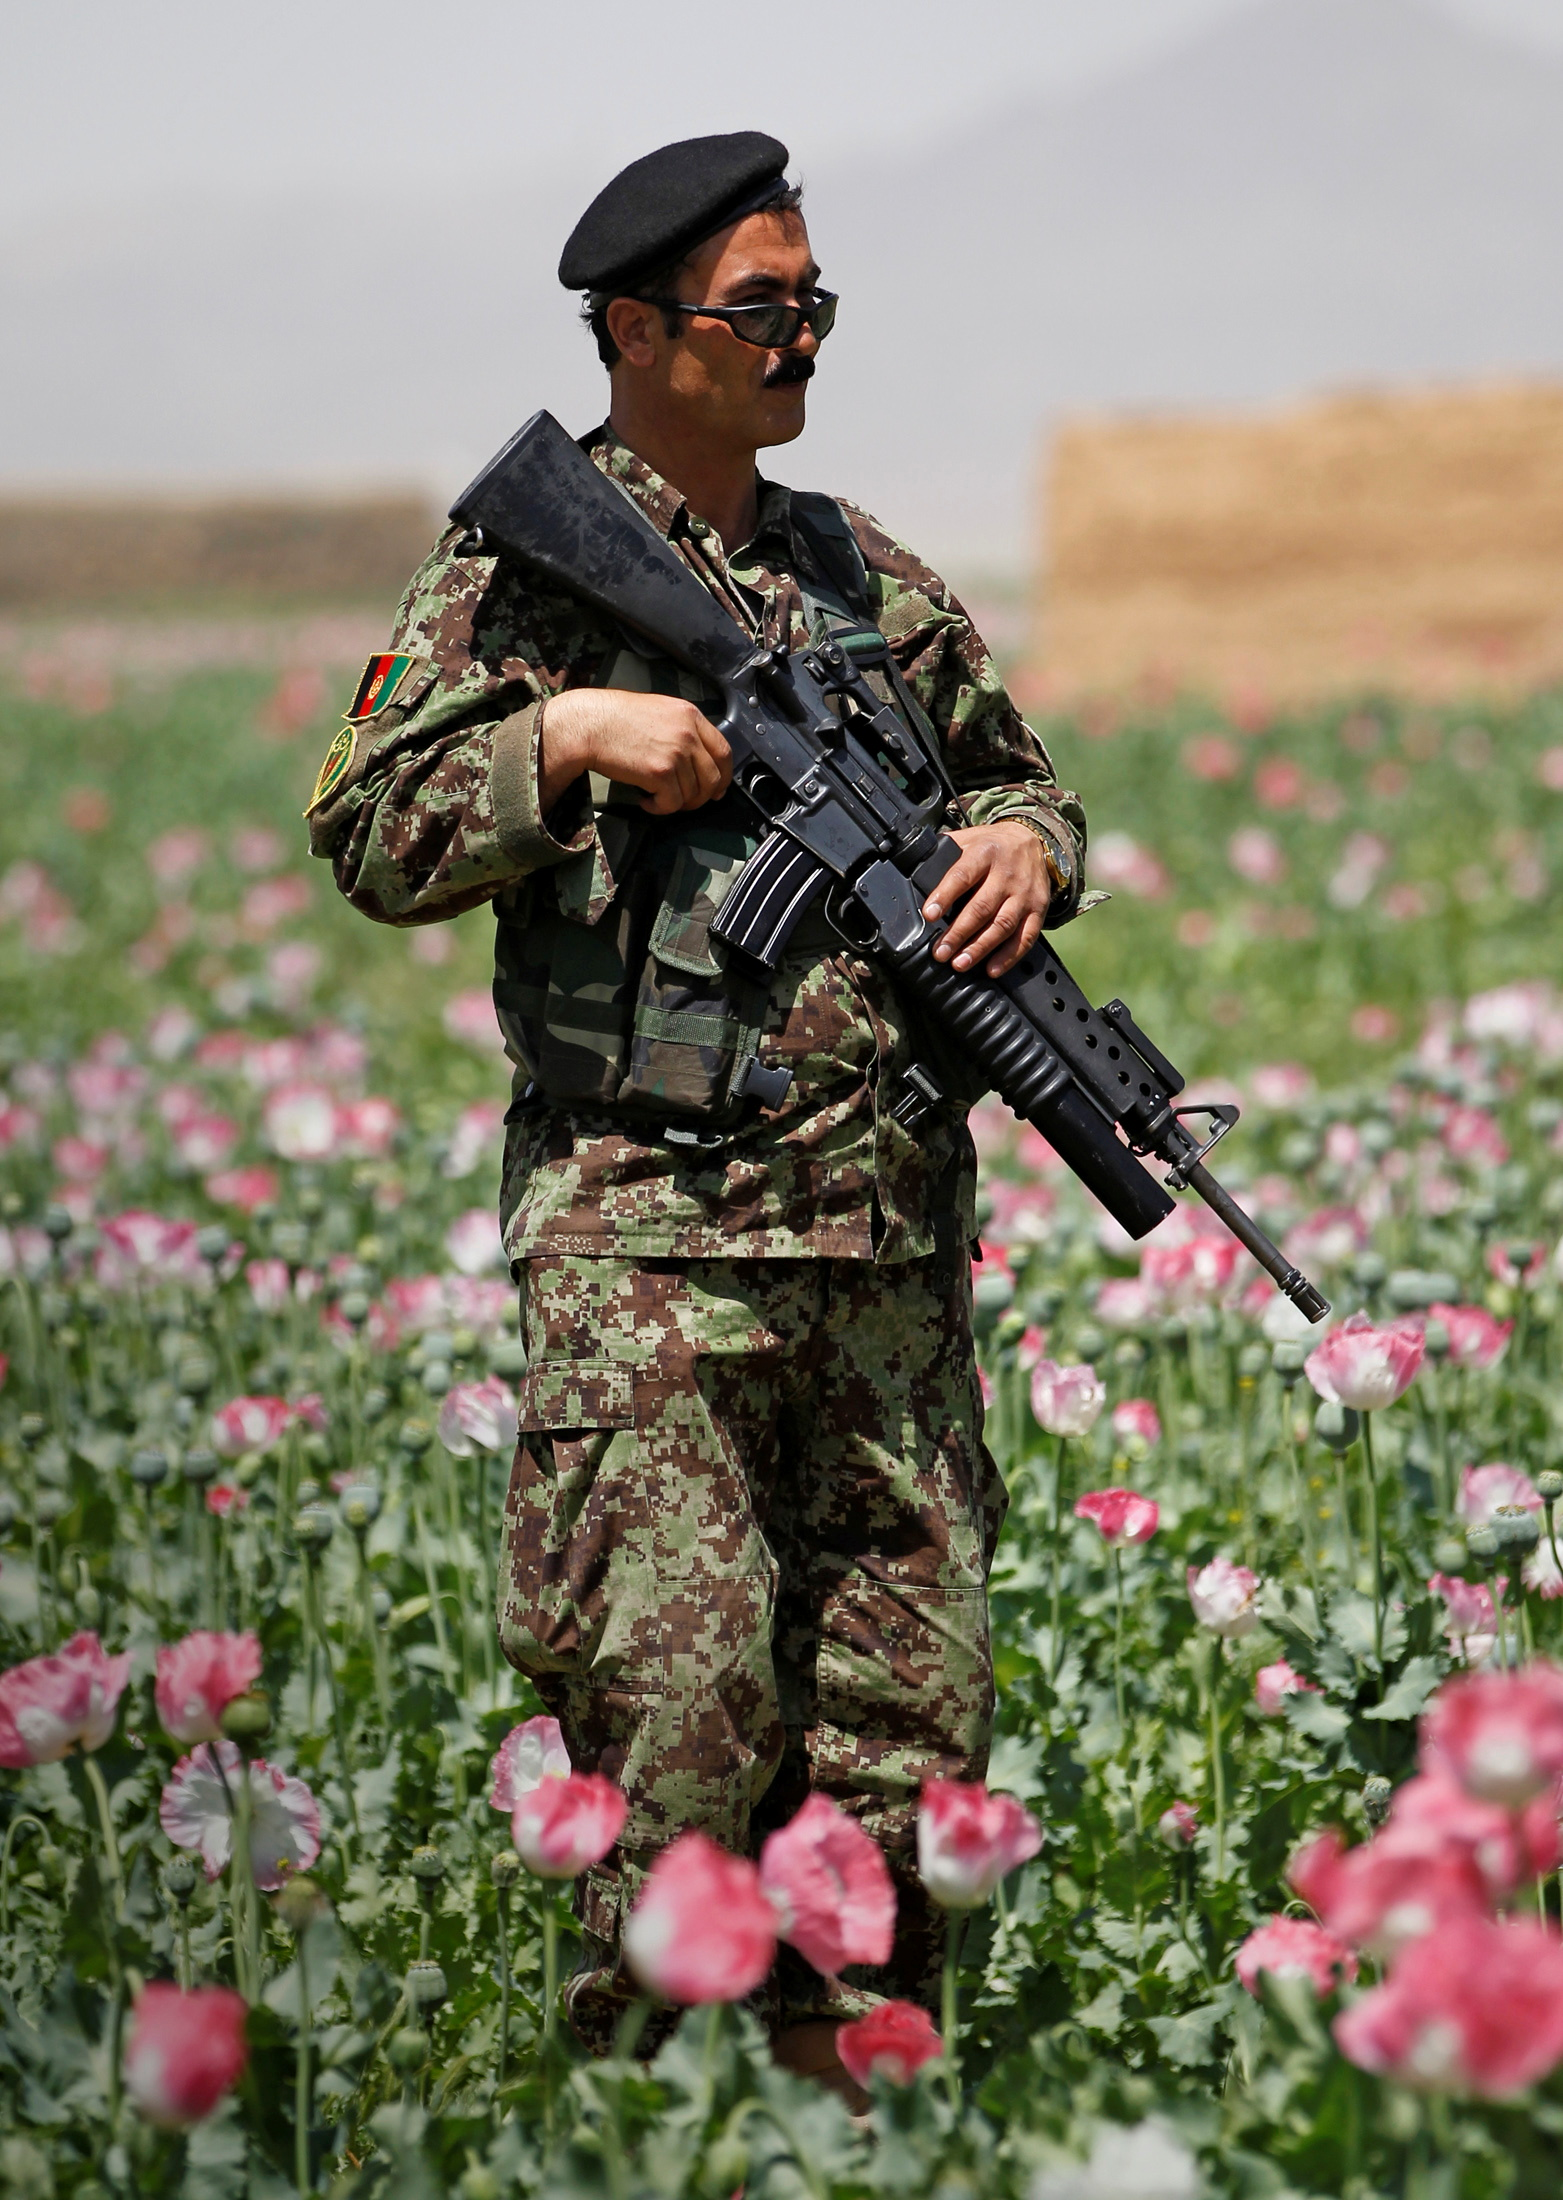 An Afghan National Army soldier stands in a poppy field during a patrol through the village of Jelawar in the Arghandab Valley north of Kandahar April 18, 2011.  REUTERS/Bob Strong/File Photo